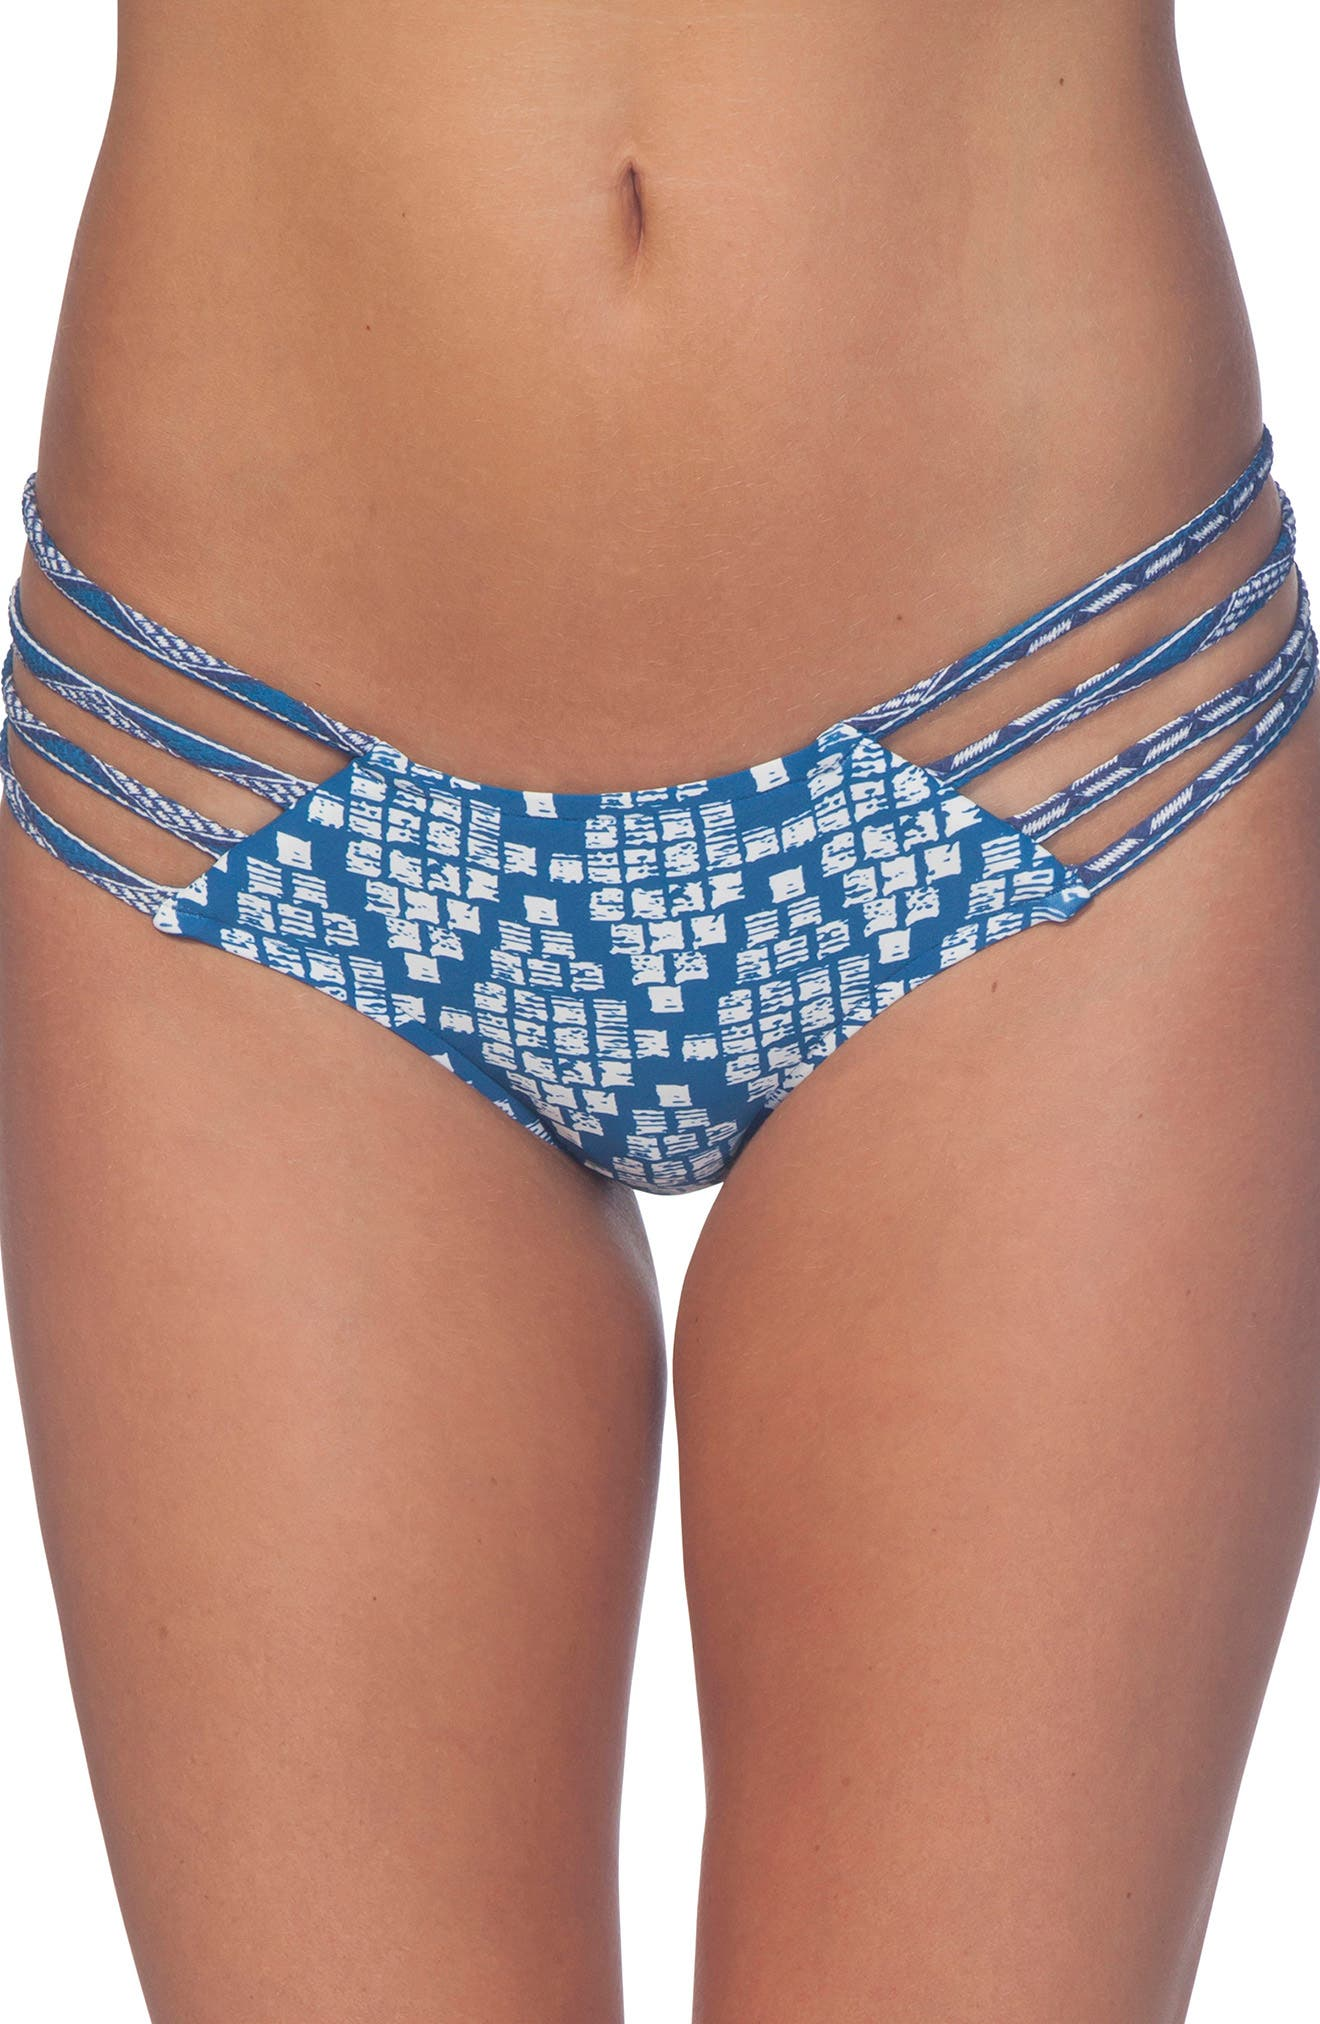 South Winds Luxe Hipster Bikini Bottoms,                             Main thumbnail 1, color,                             Blue